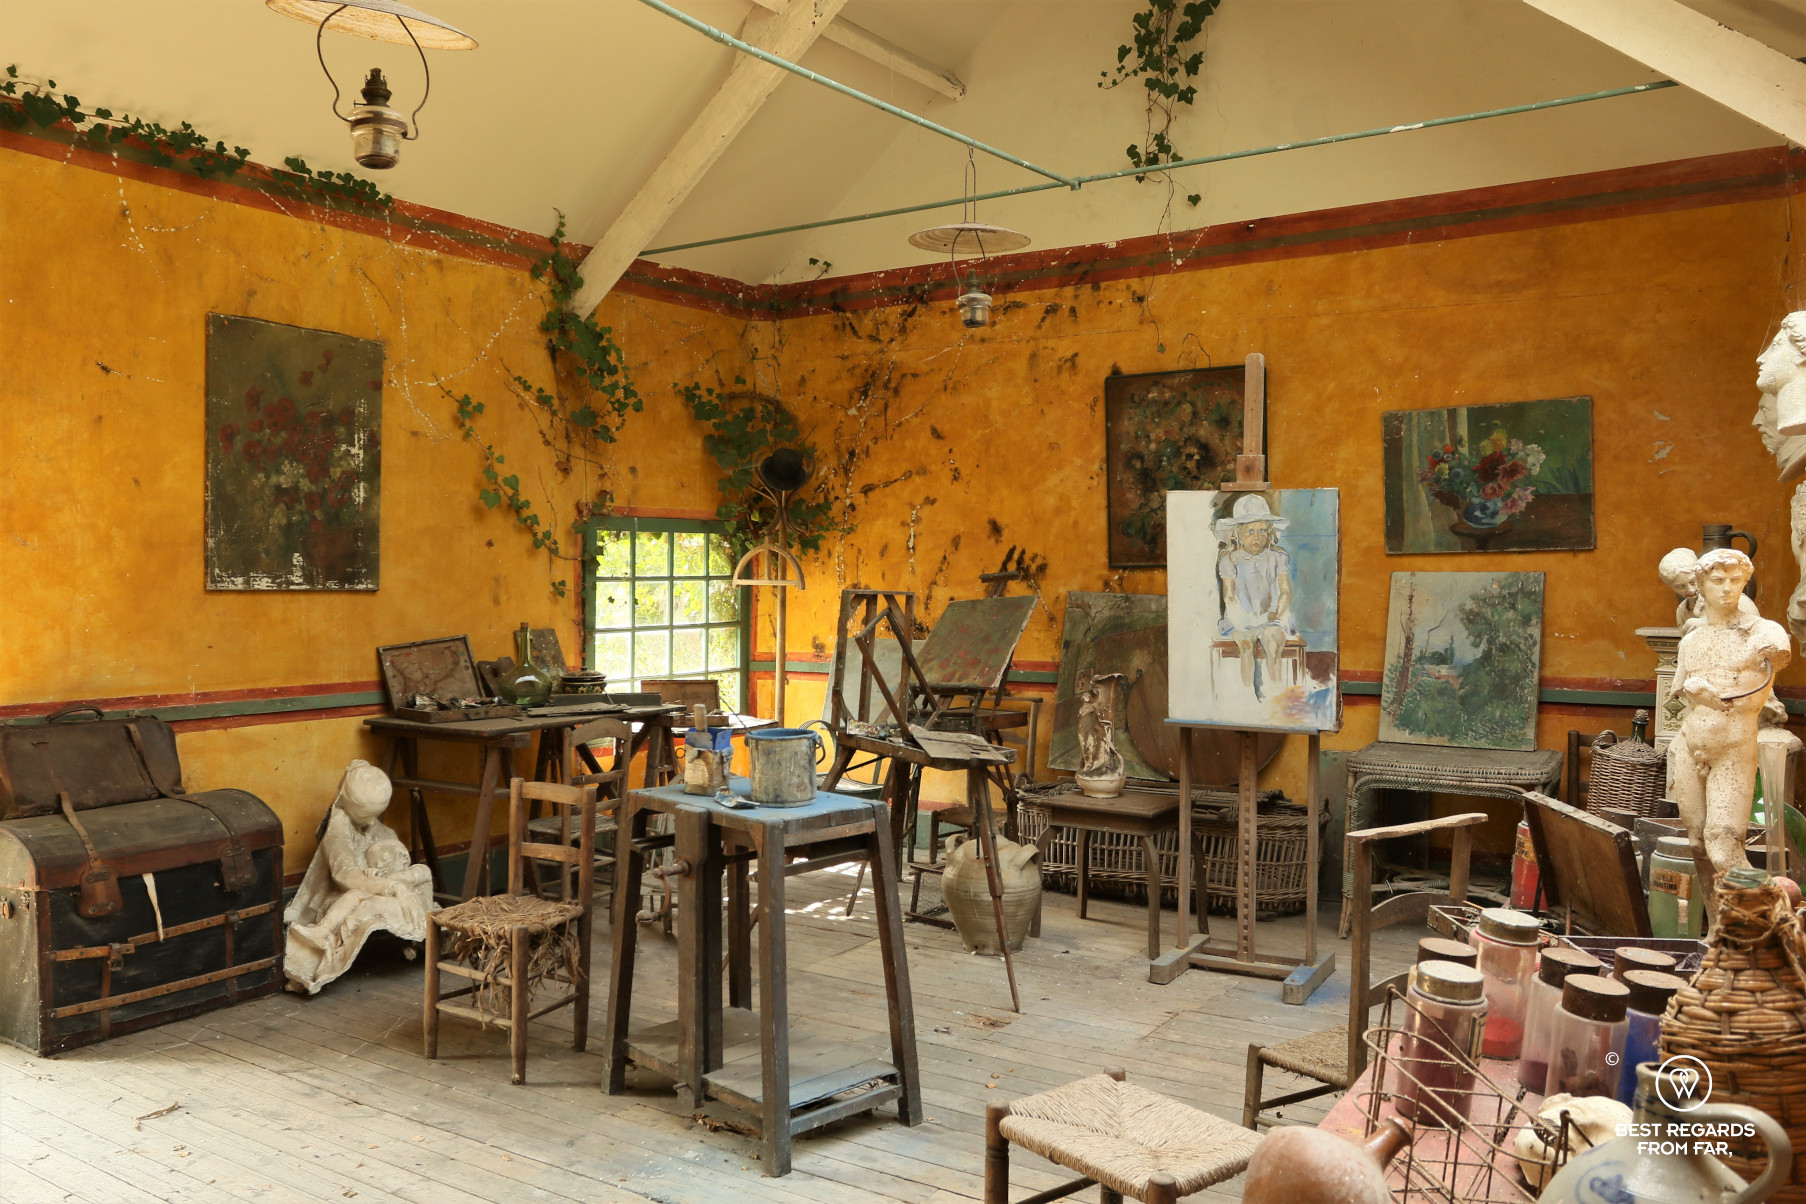 The sutio of painters in Ancien hôtel Baudy, Giverny, France